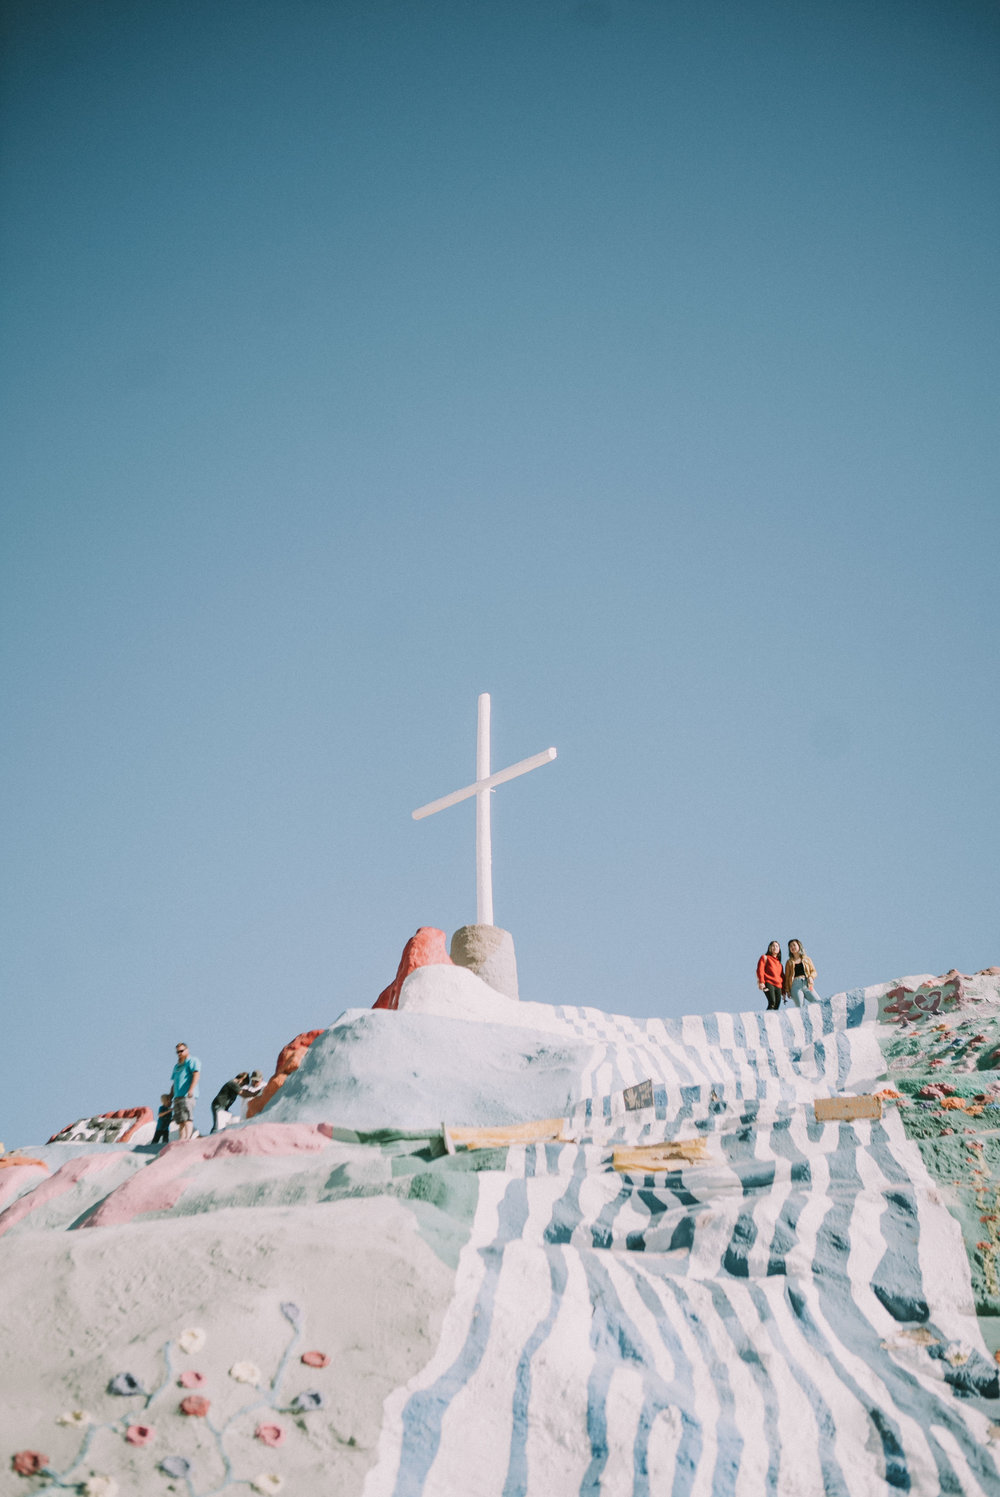 JPC_Trips_2017_SalvationMountain-03.jpg